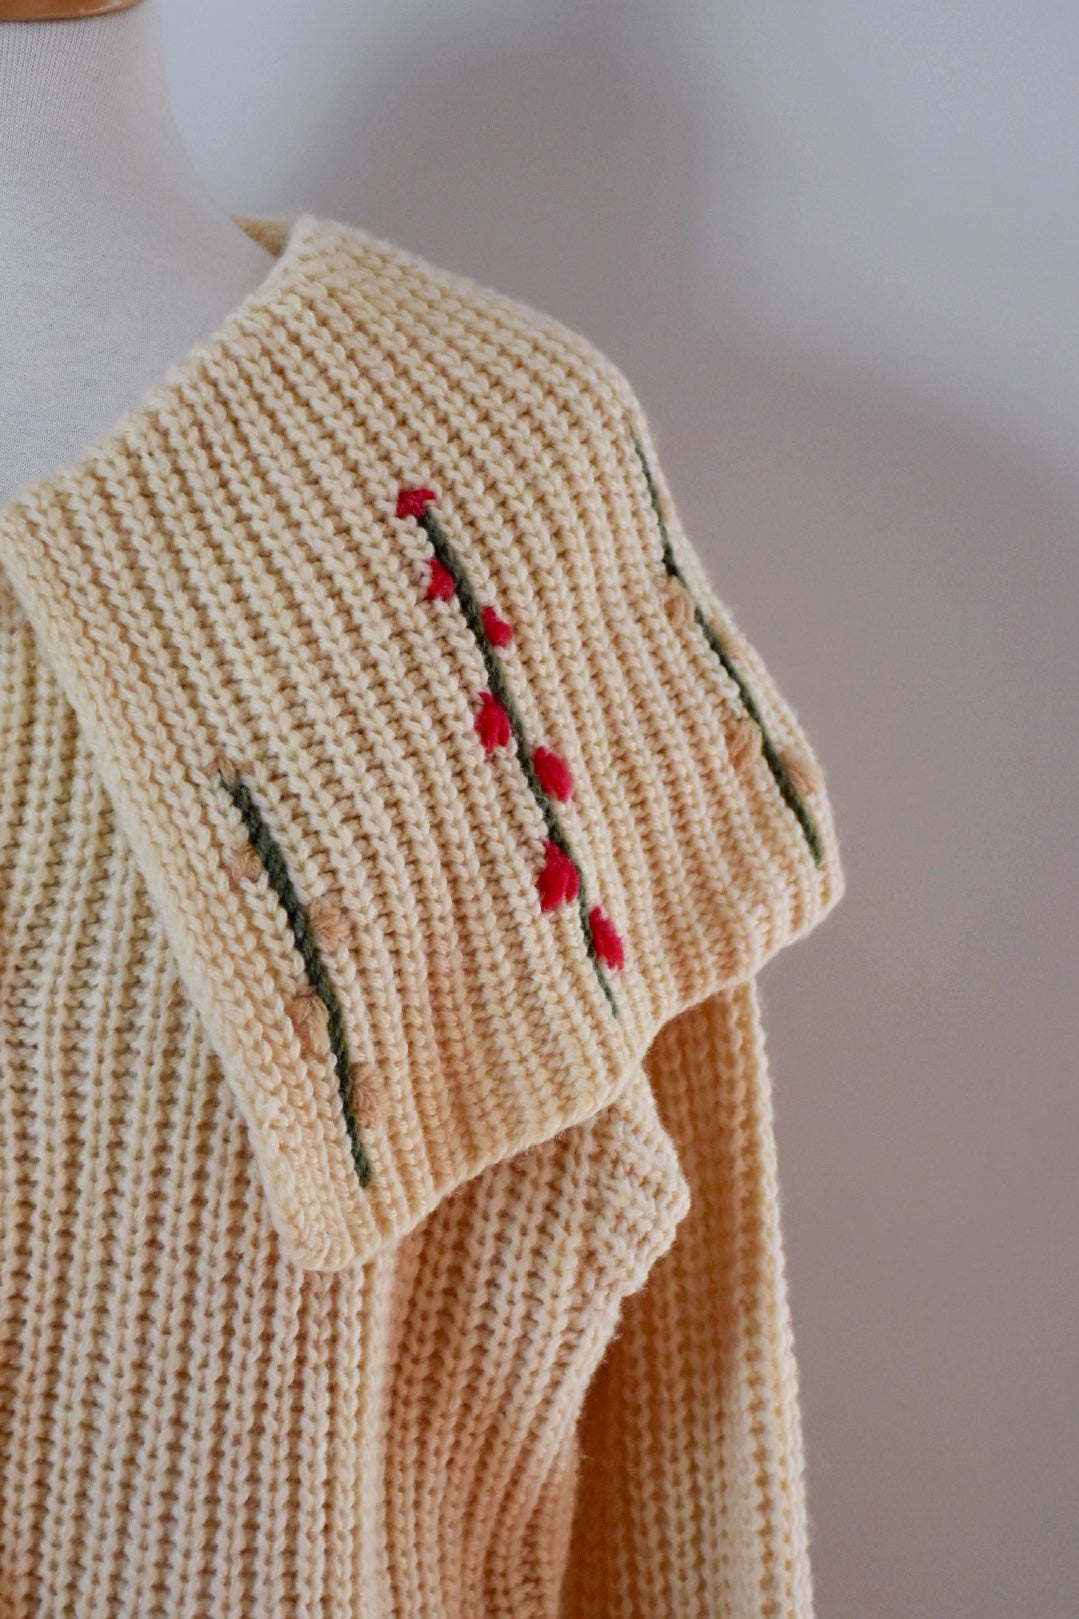 50s Vintage Shawl Collar Embroidered Cardigan Sweater